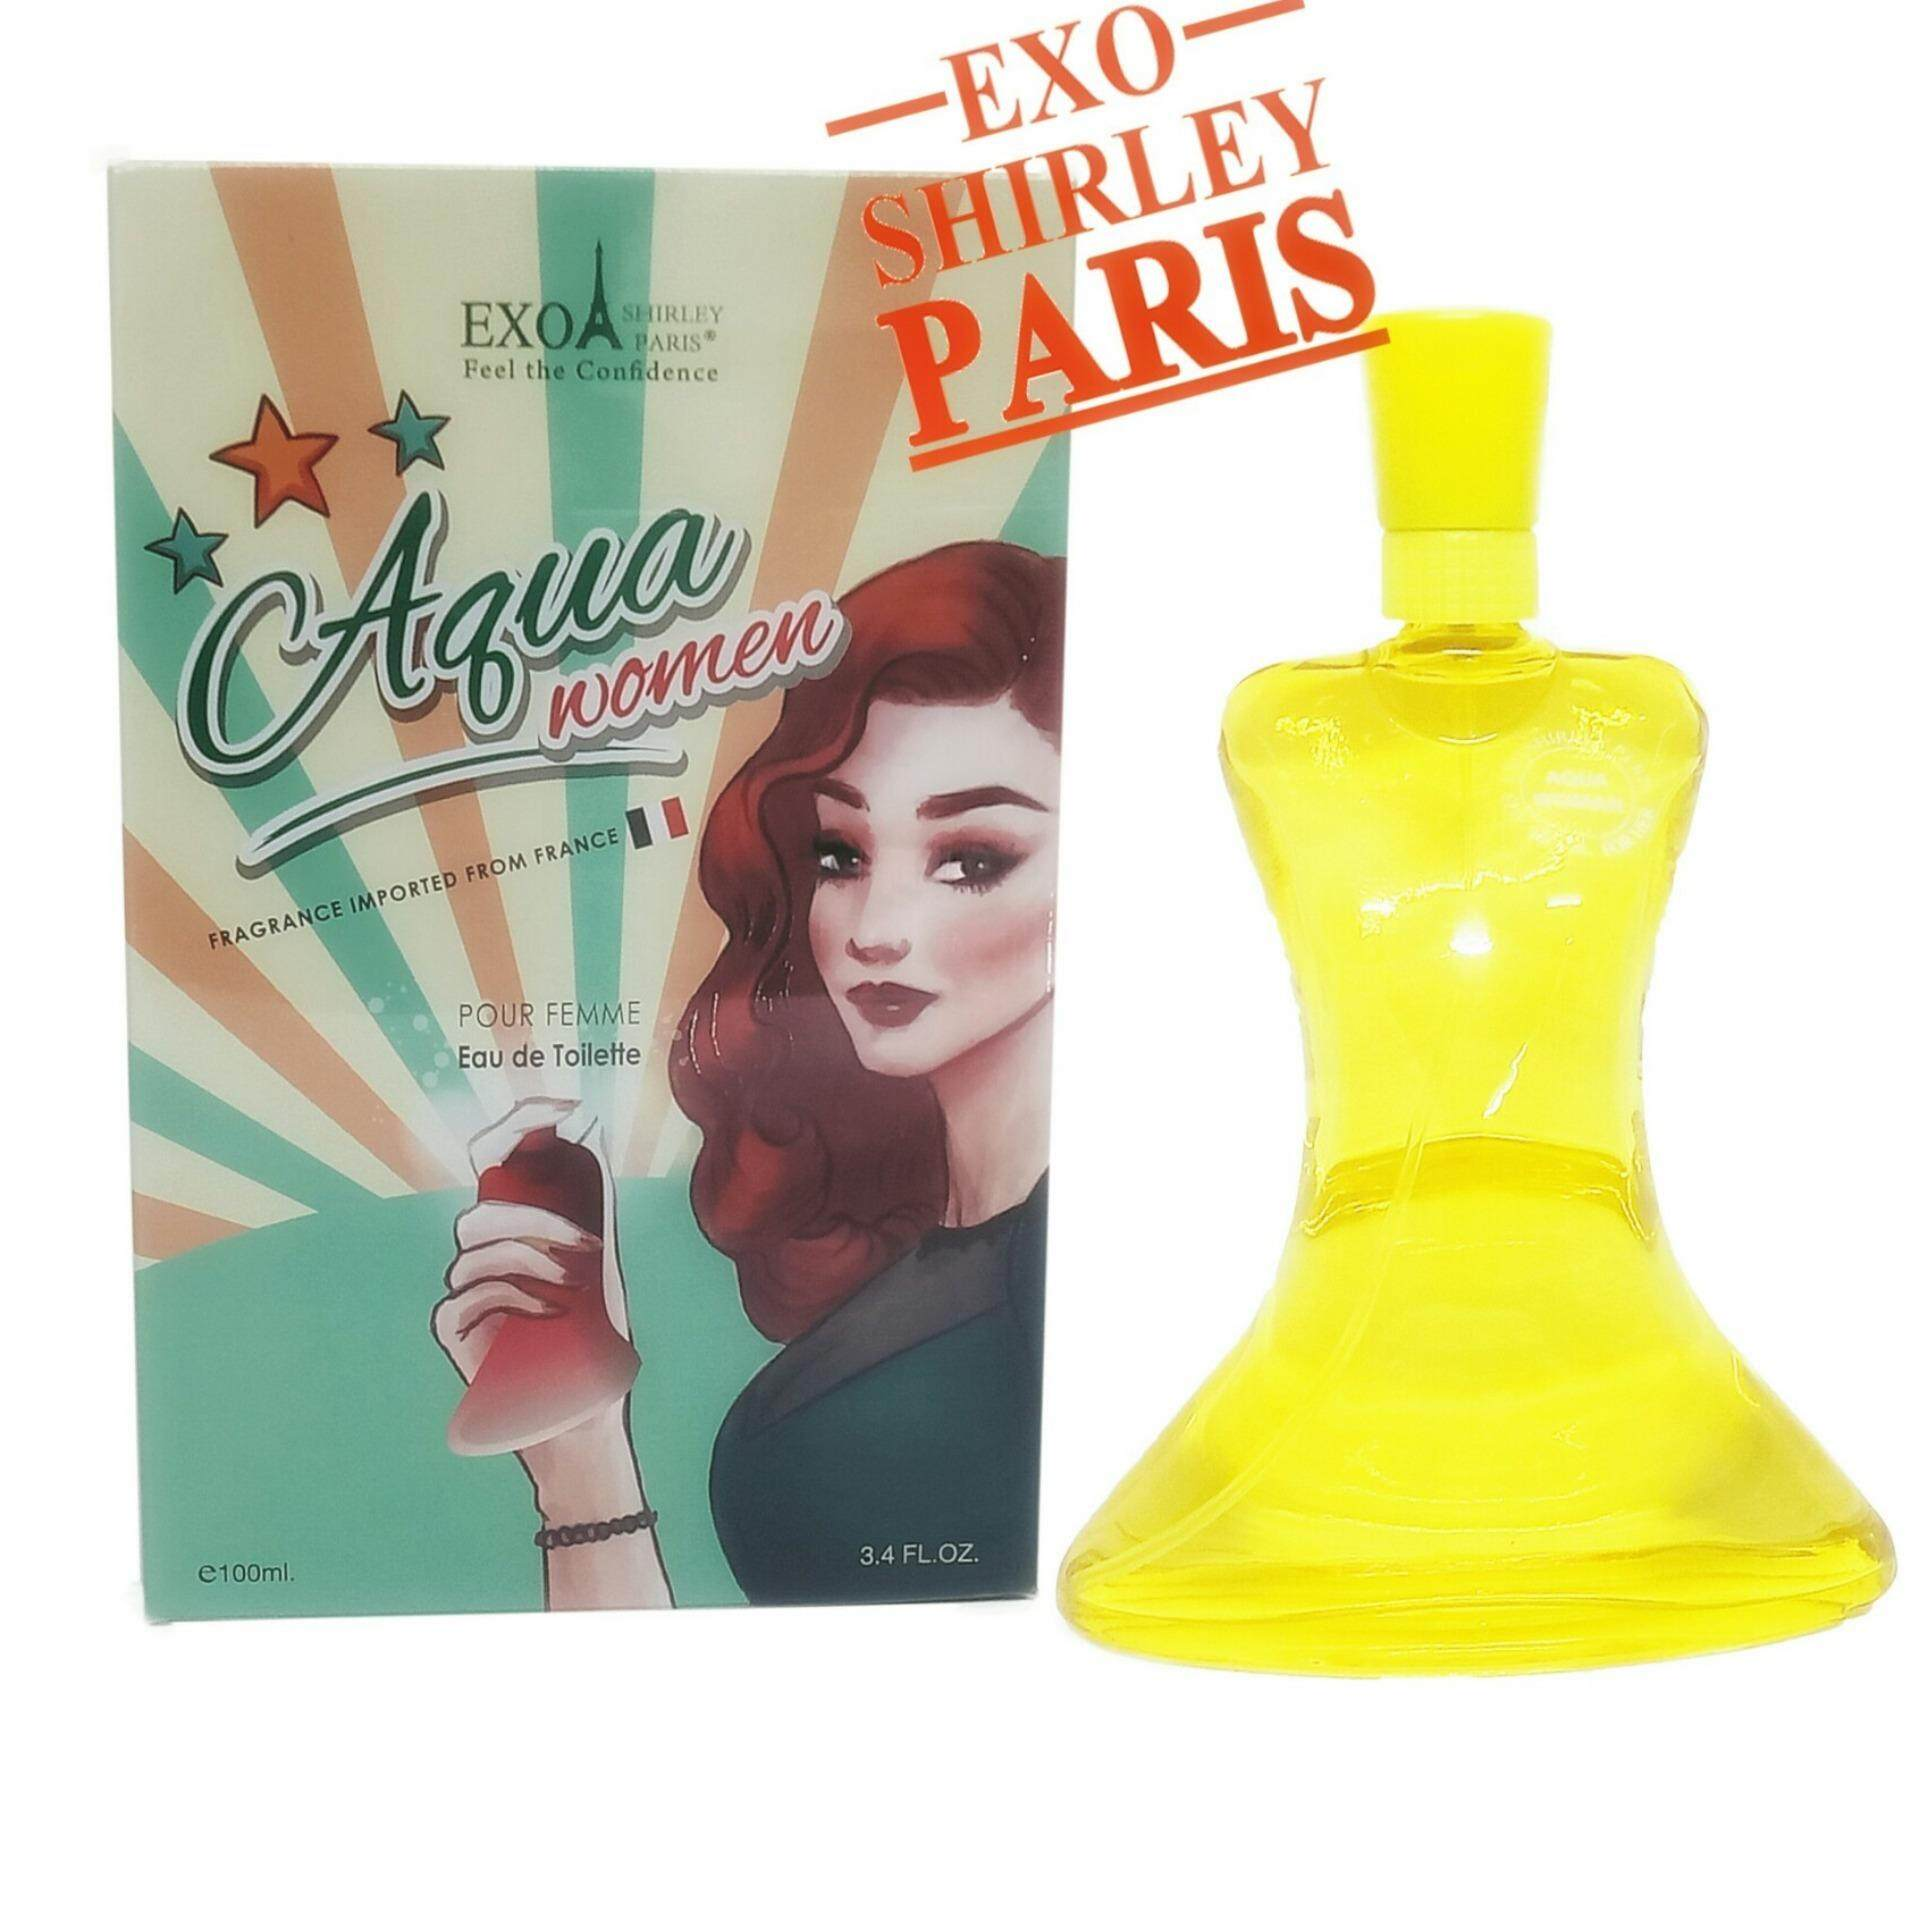 ขาย Marie Pierre Paris Exo Shirley Paris Aqua Woman Marie Pierre Paris ใน สมุทรปราการ